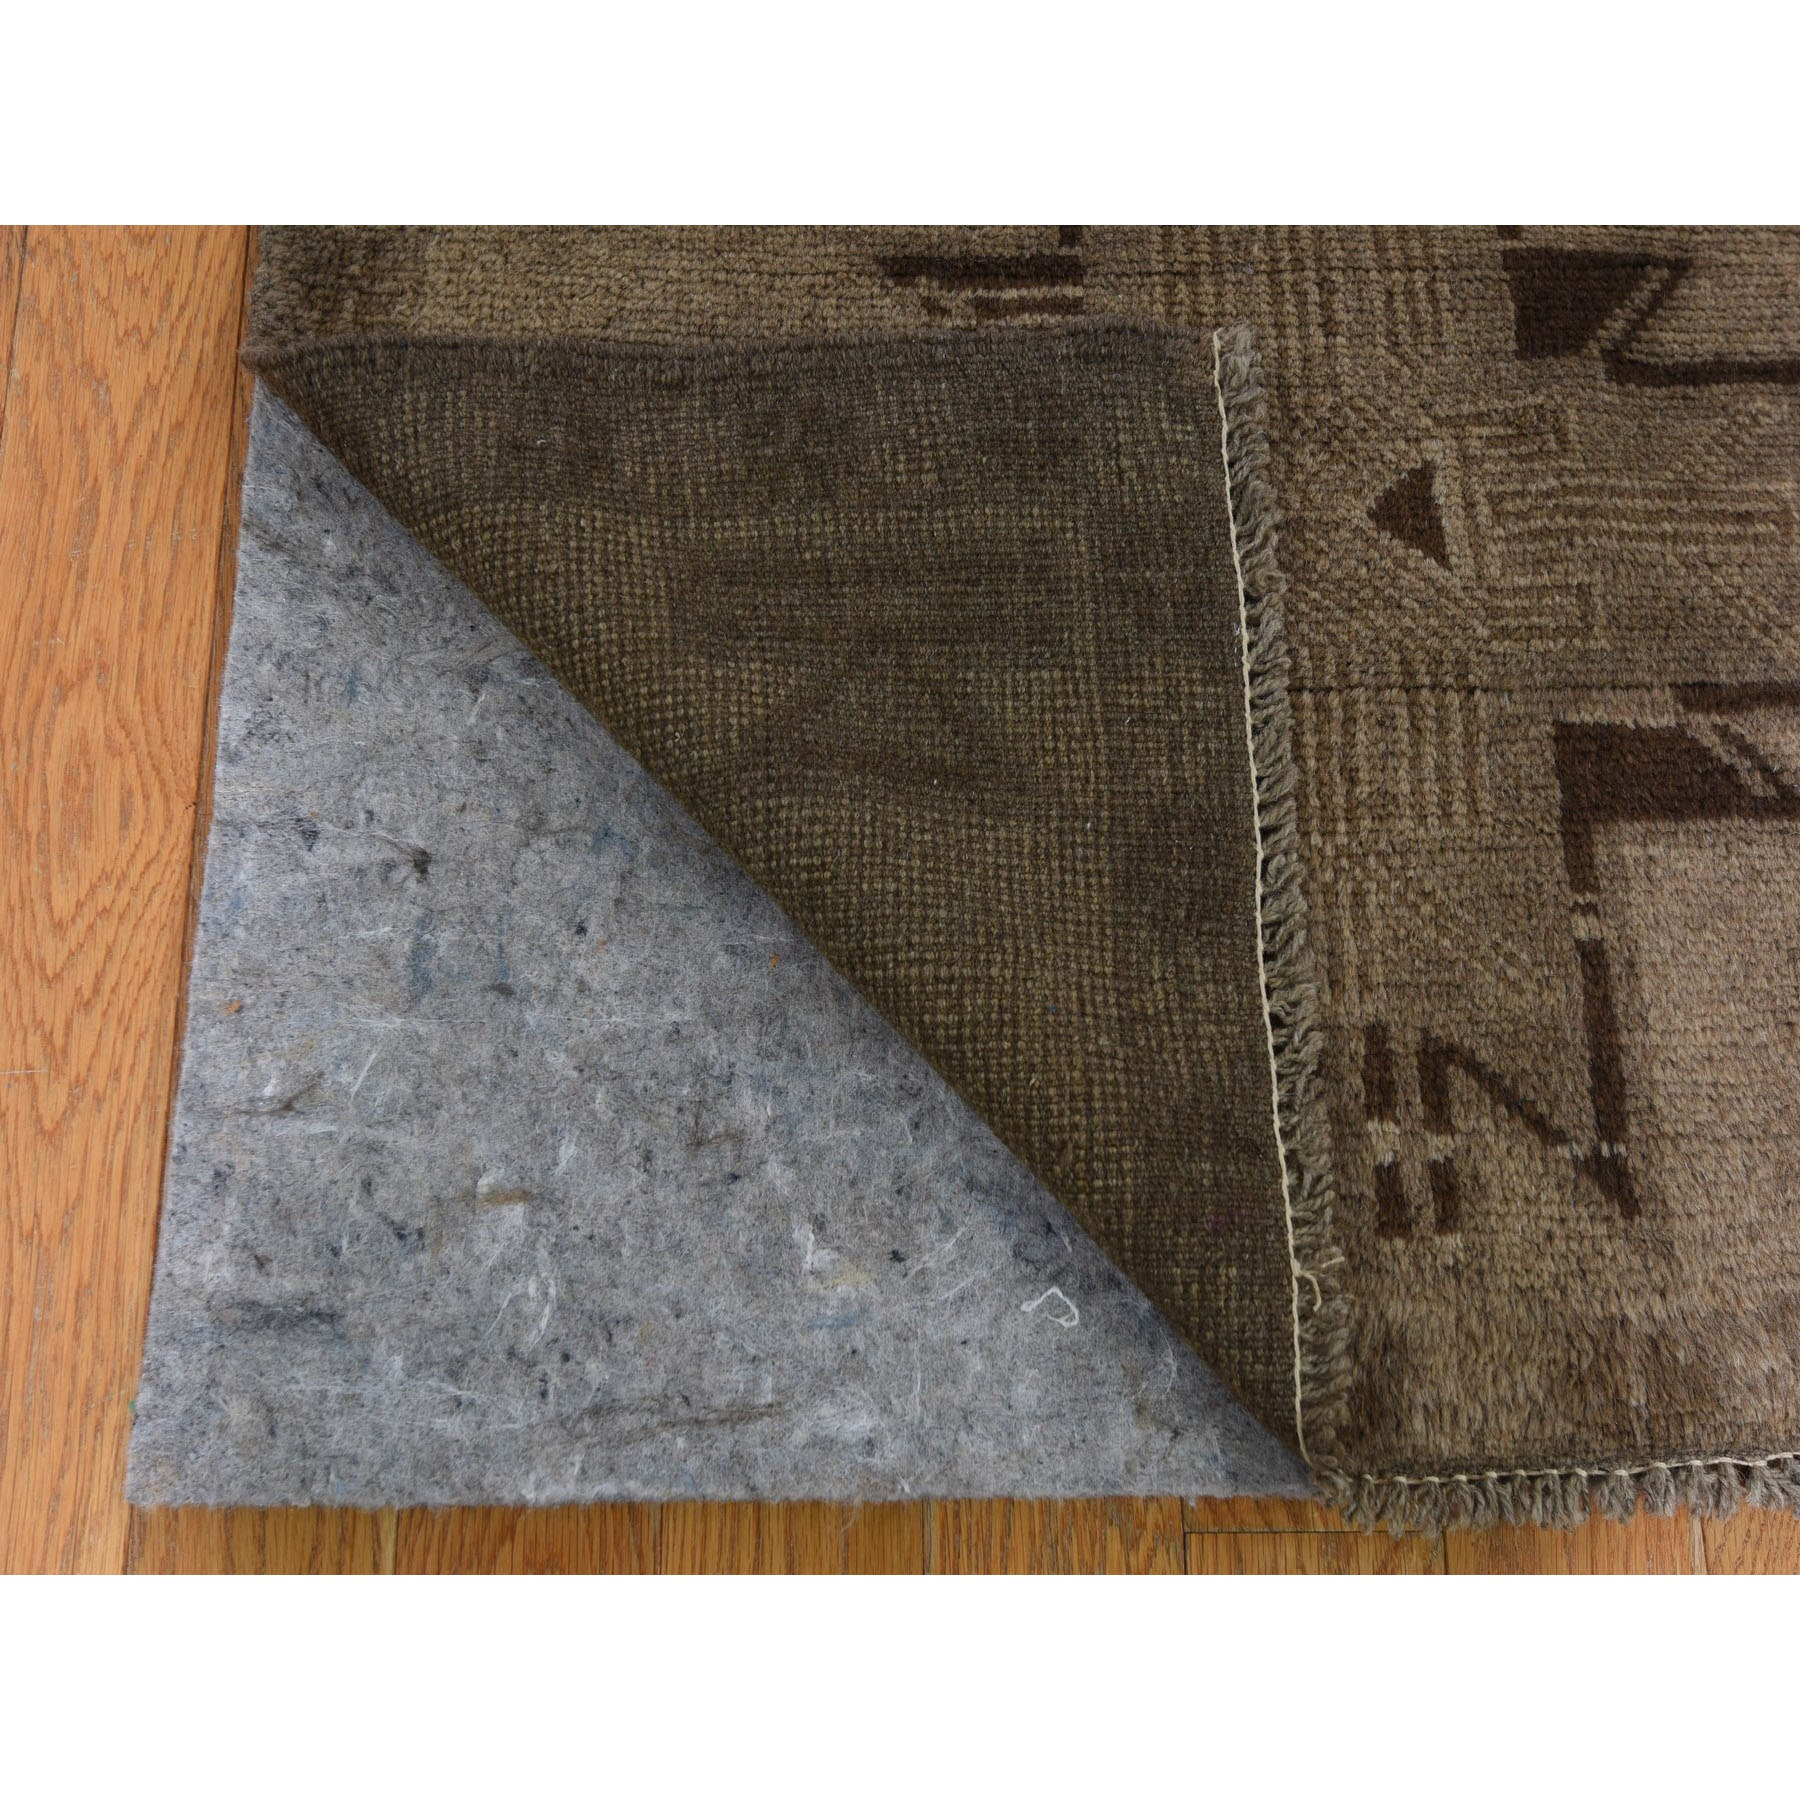 """2'7""""x12'8""""  Washed Out Afghan Baluch With Natural Colors Pure Wool Runner Hand Knotted Oriental Rug"""